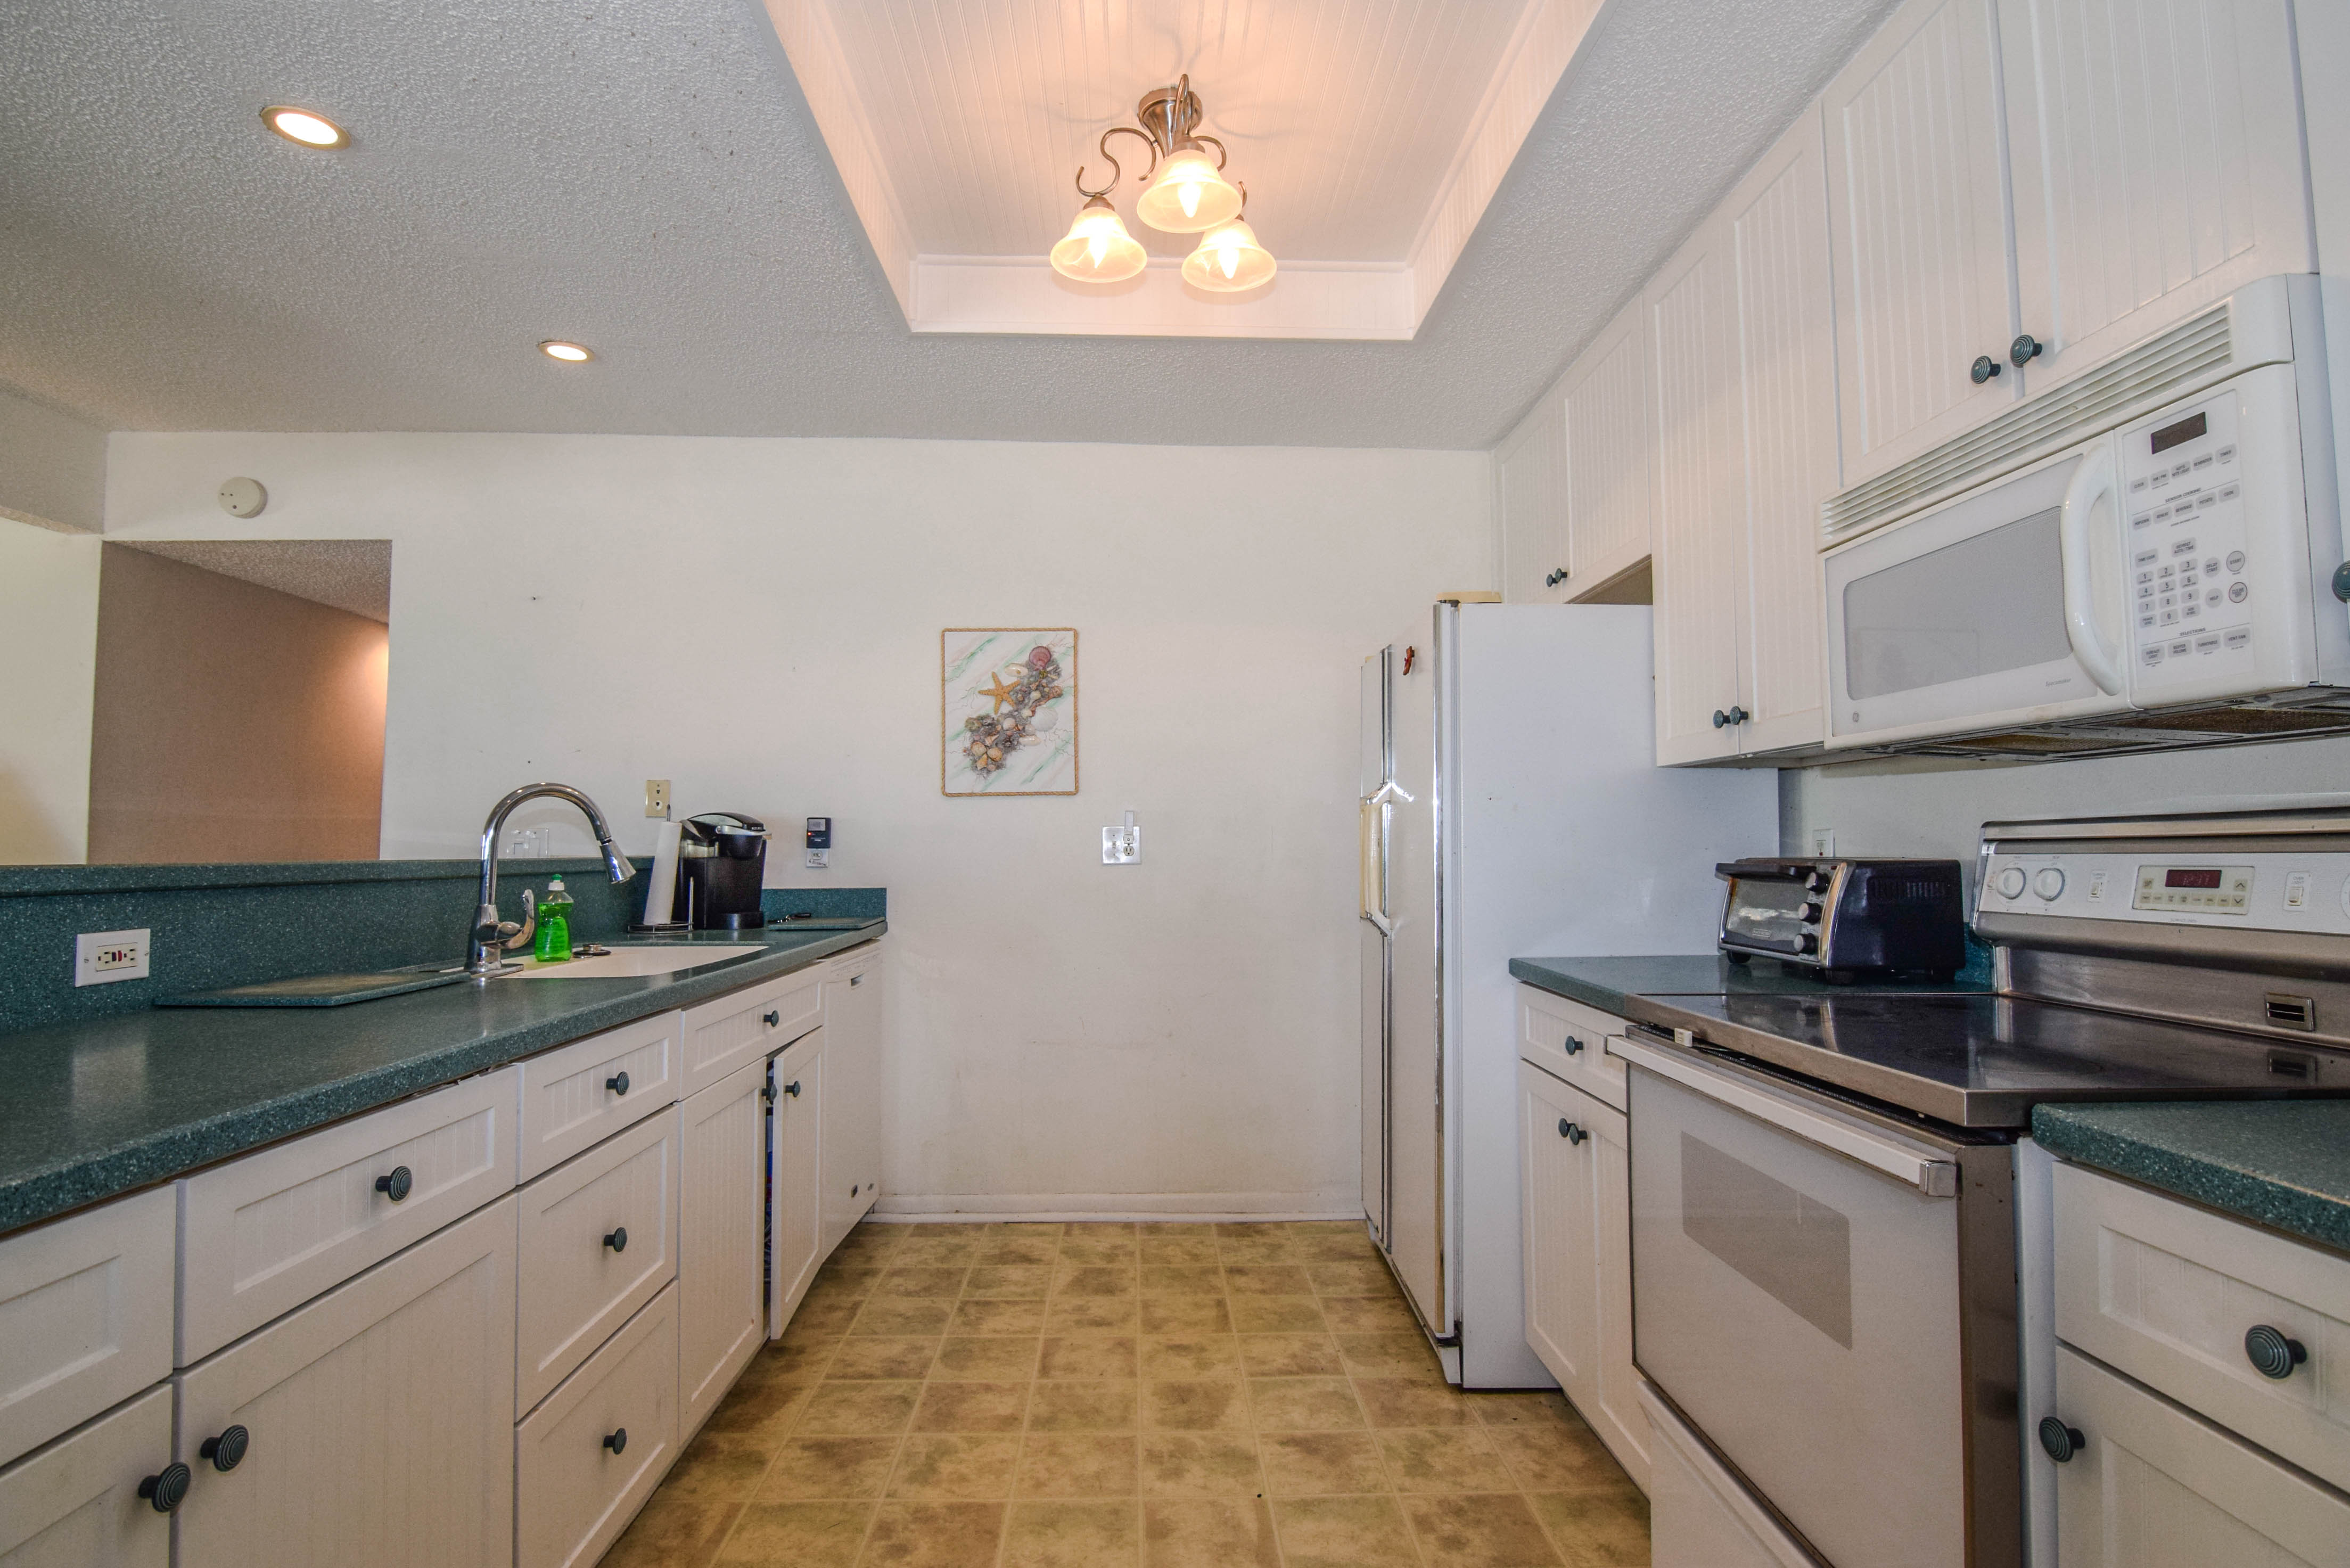 Solid Surface Counter Tops and KraftMaid Cabinetry